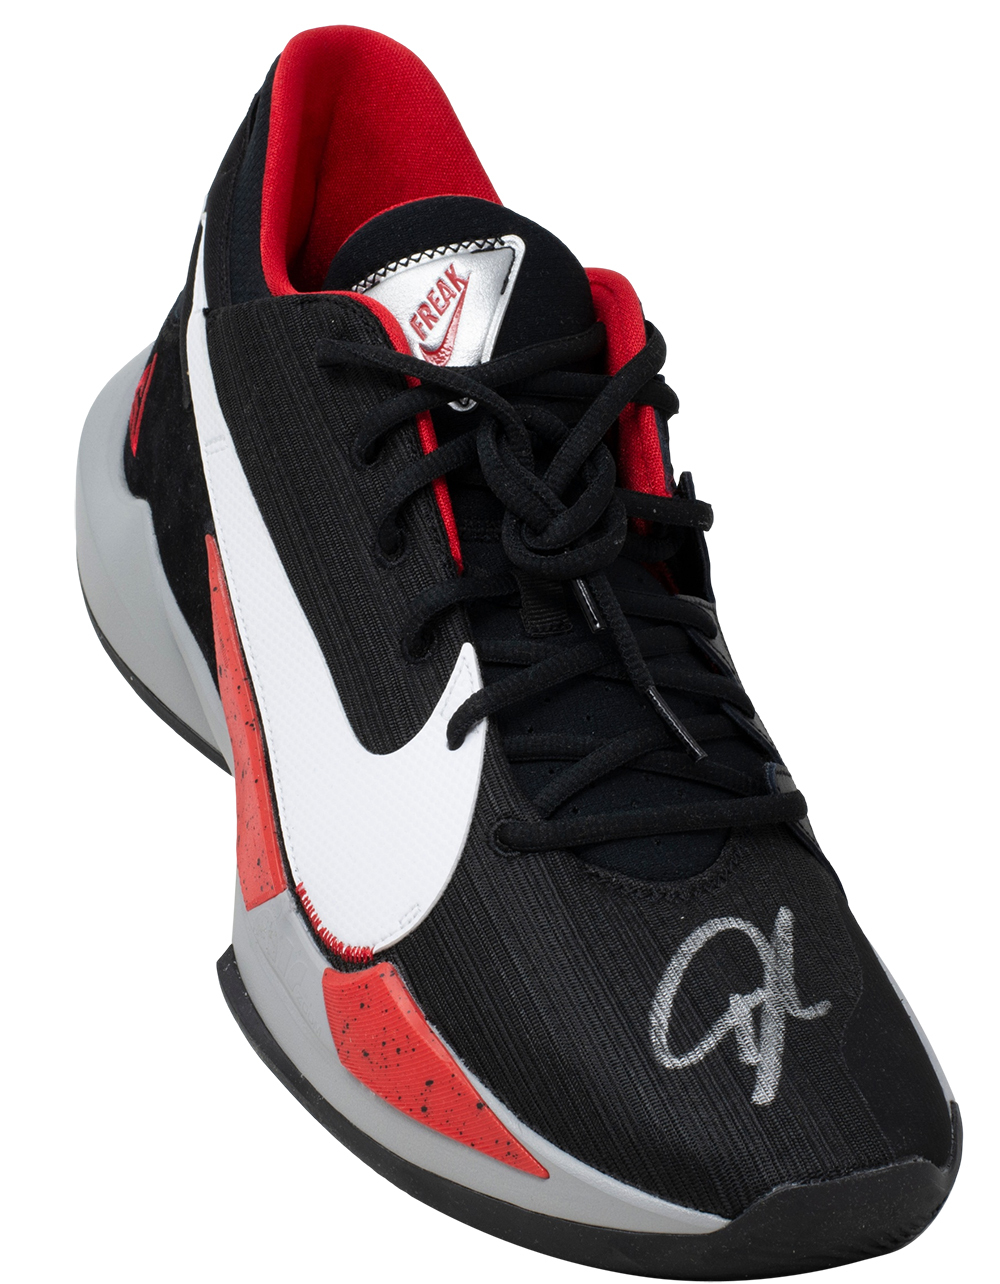 Giannis Antetokounmpo Signed Right Red Black Nike Zoom ...